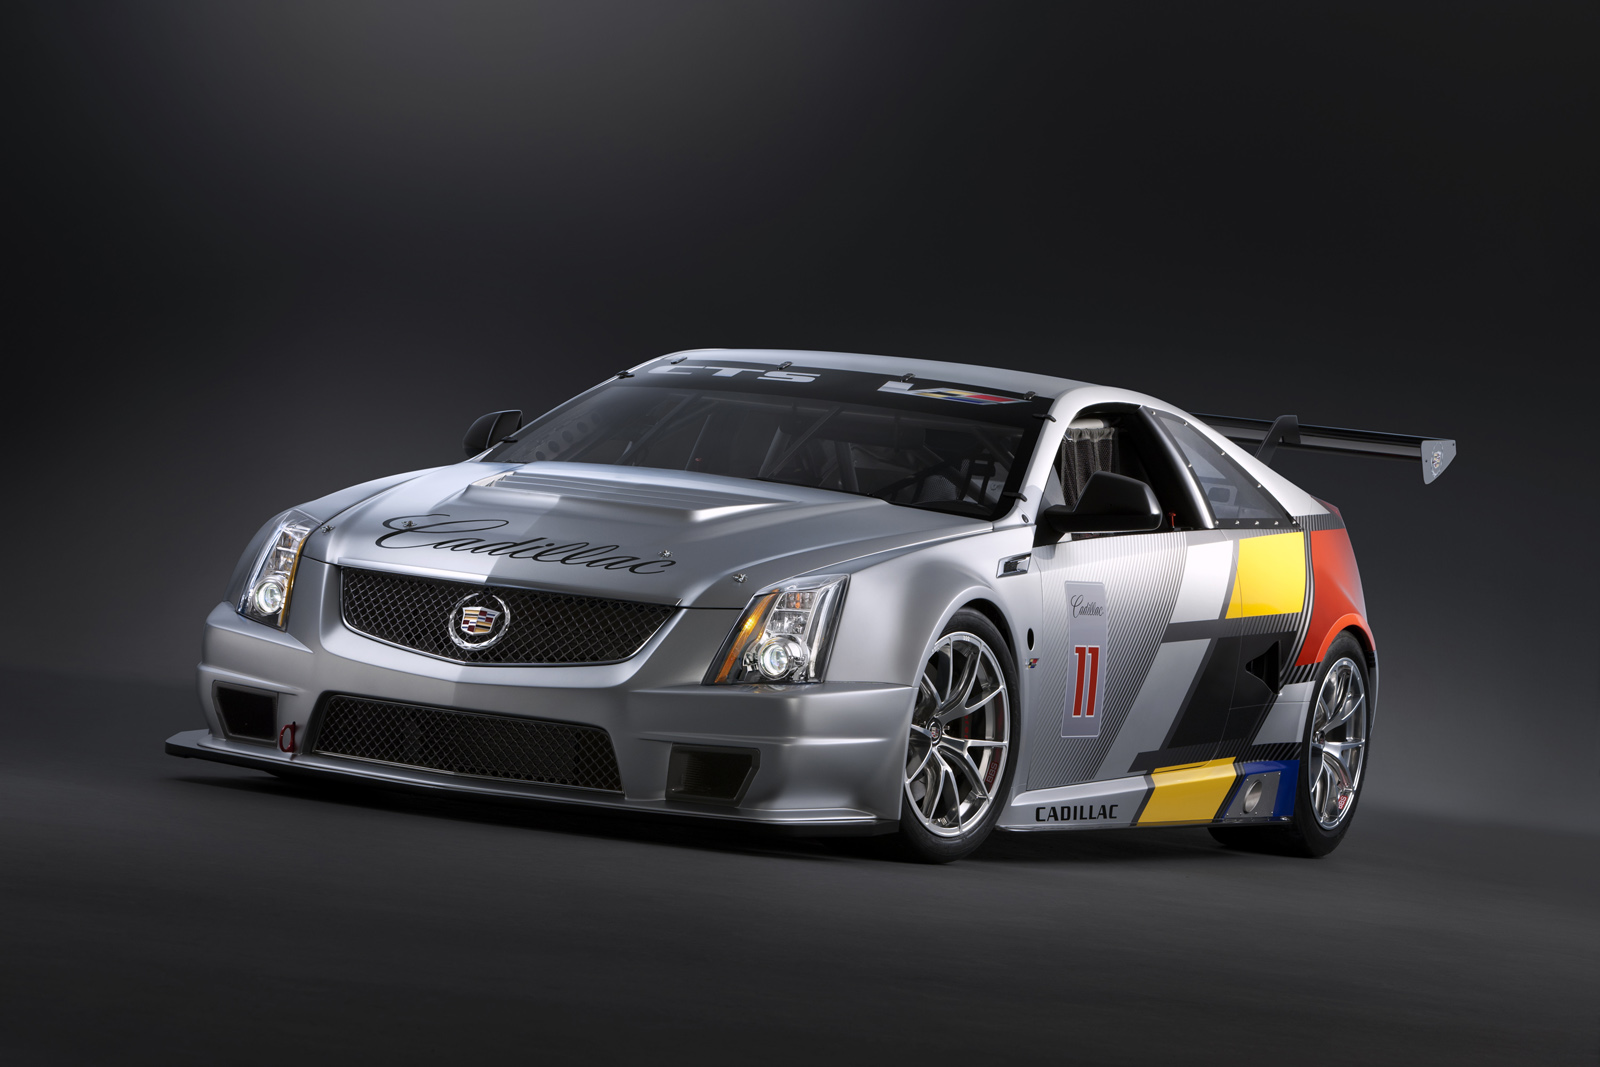 2011 cts v coupe racecar first official images released. Black Bedroom Furniture Sets. Home Design Ideas